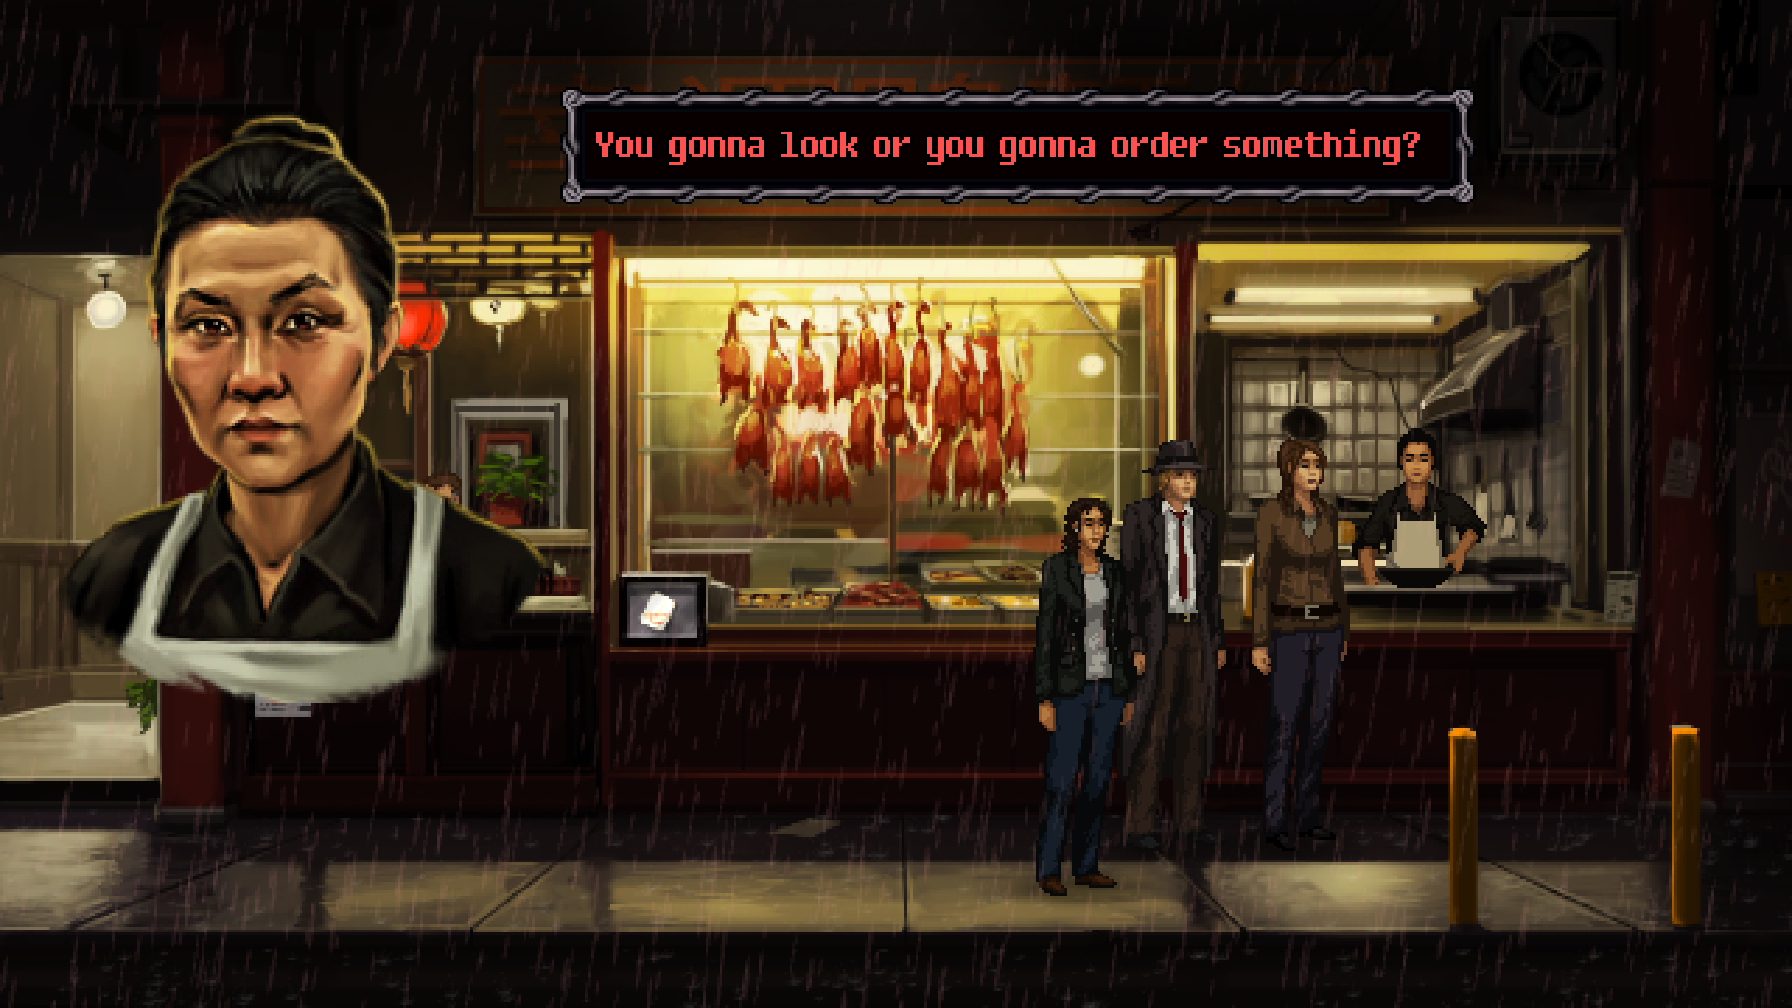 IMAGE(http://www.wadjeteyegames.com/wp-content/uploads/unavowed-chinatown.png)